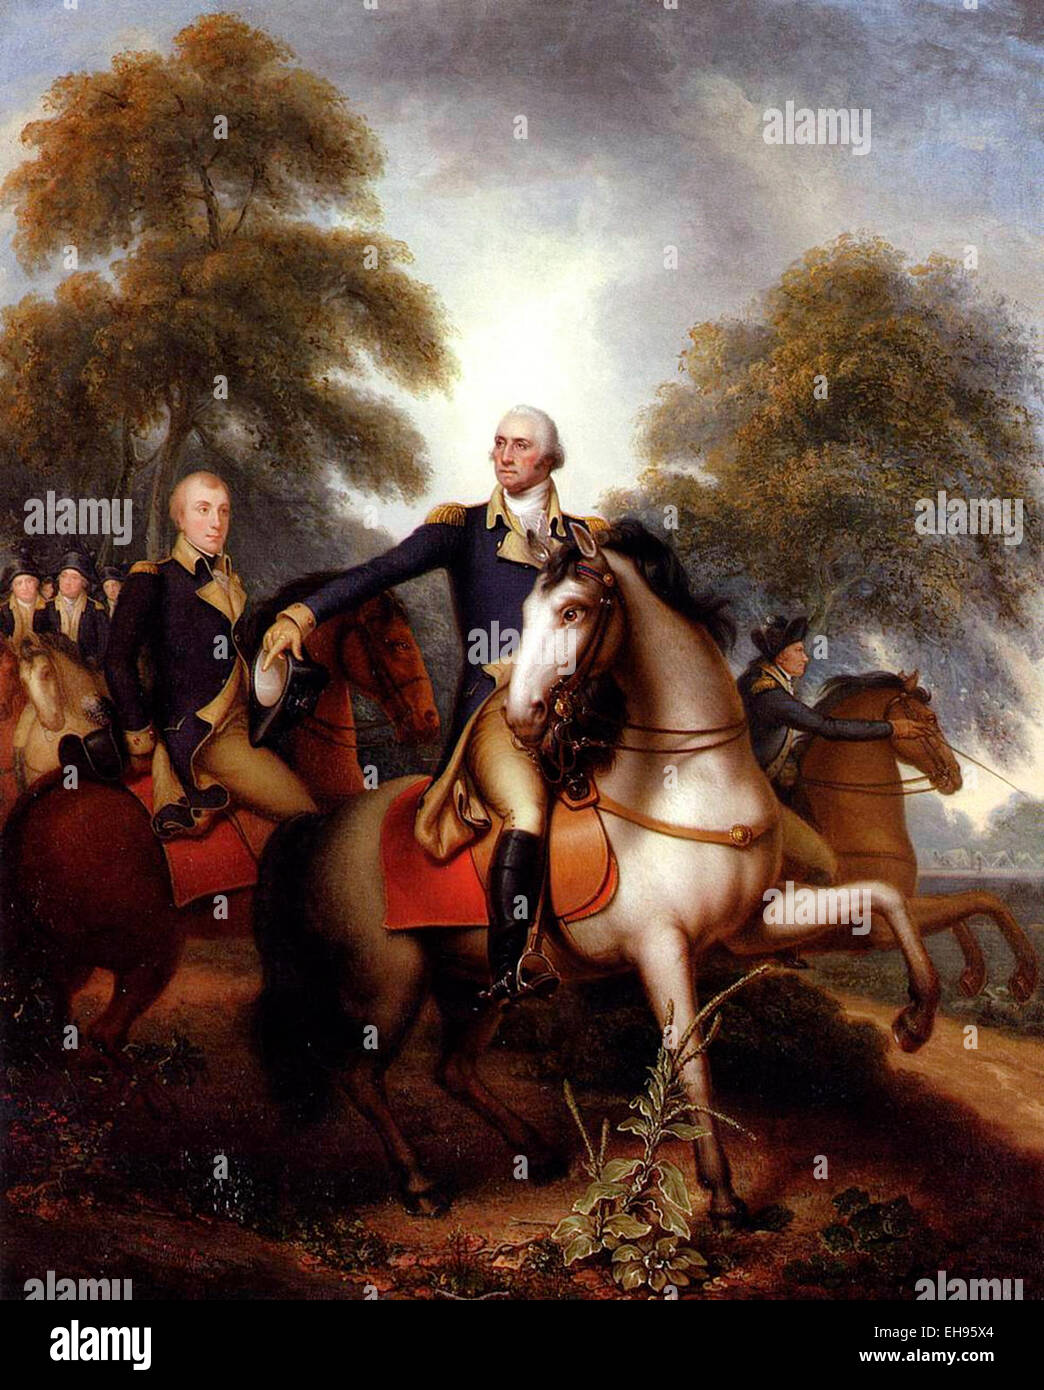 General George Washington Before Yorktown Rembrandt Peale 1823 Stock Photo